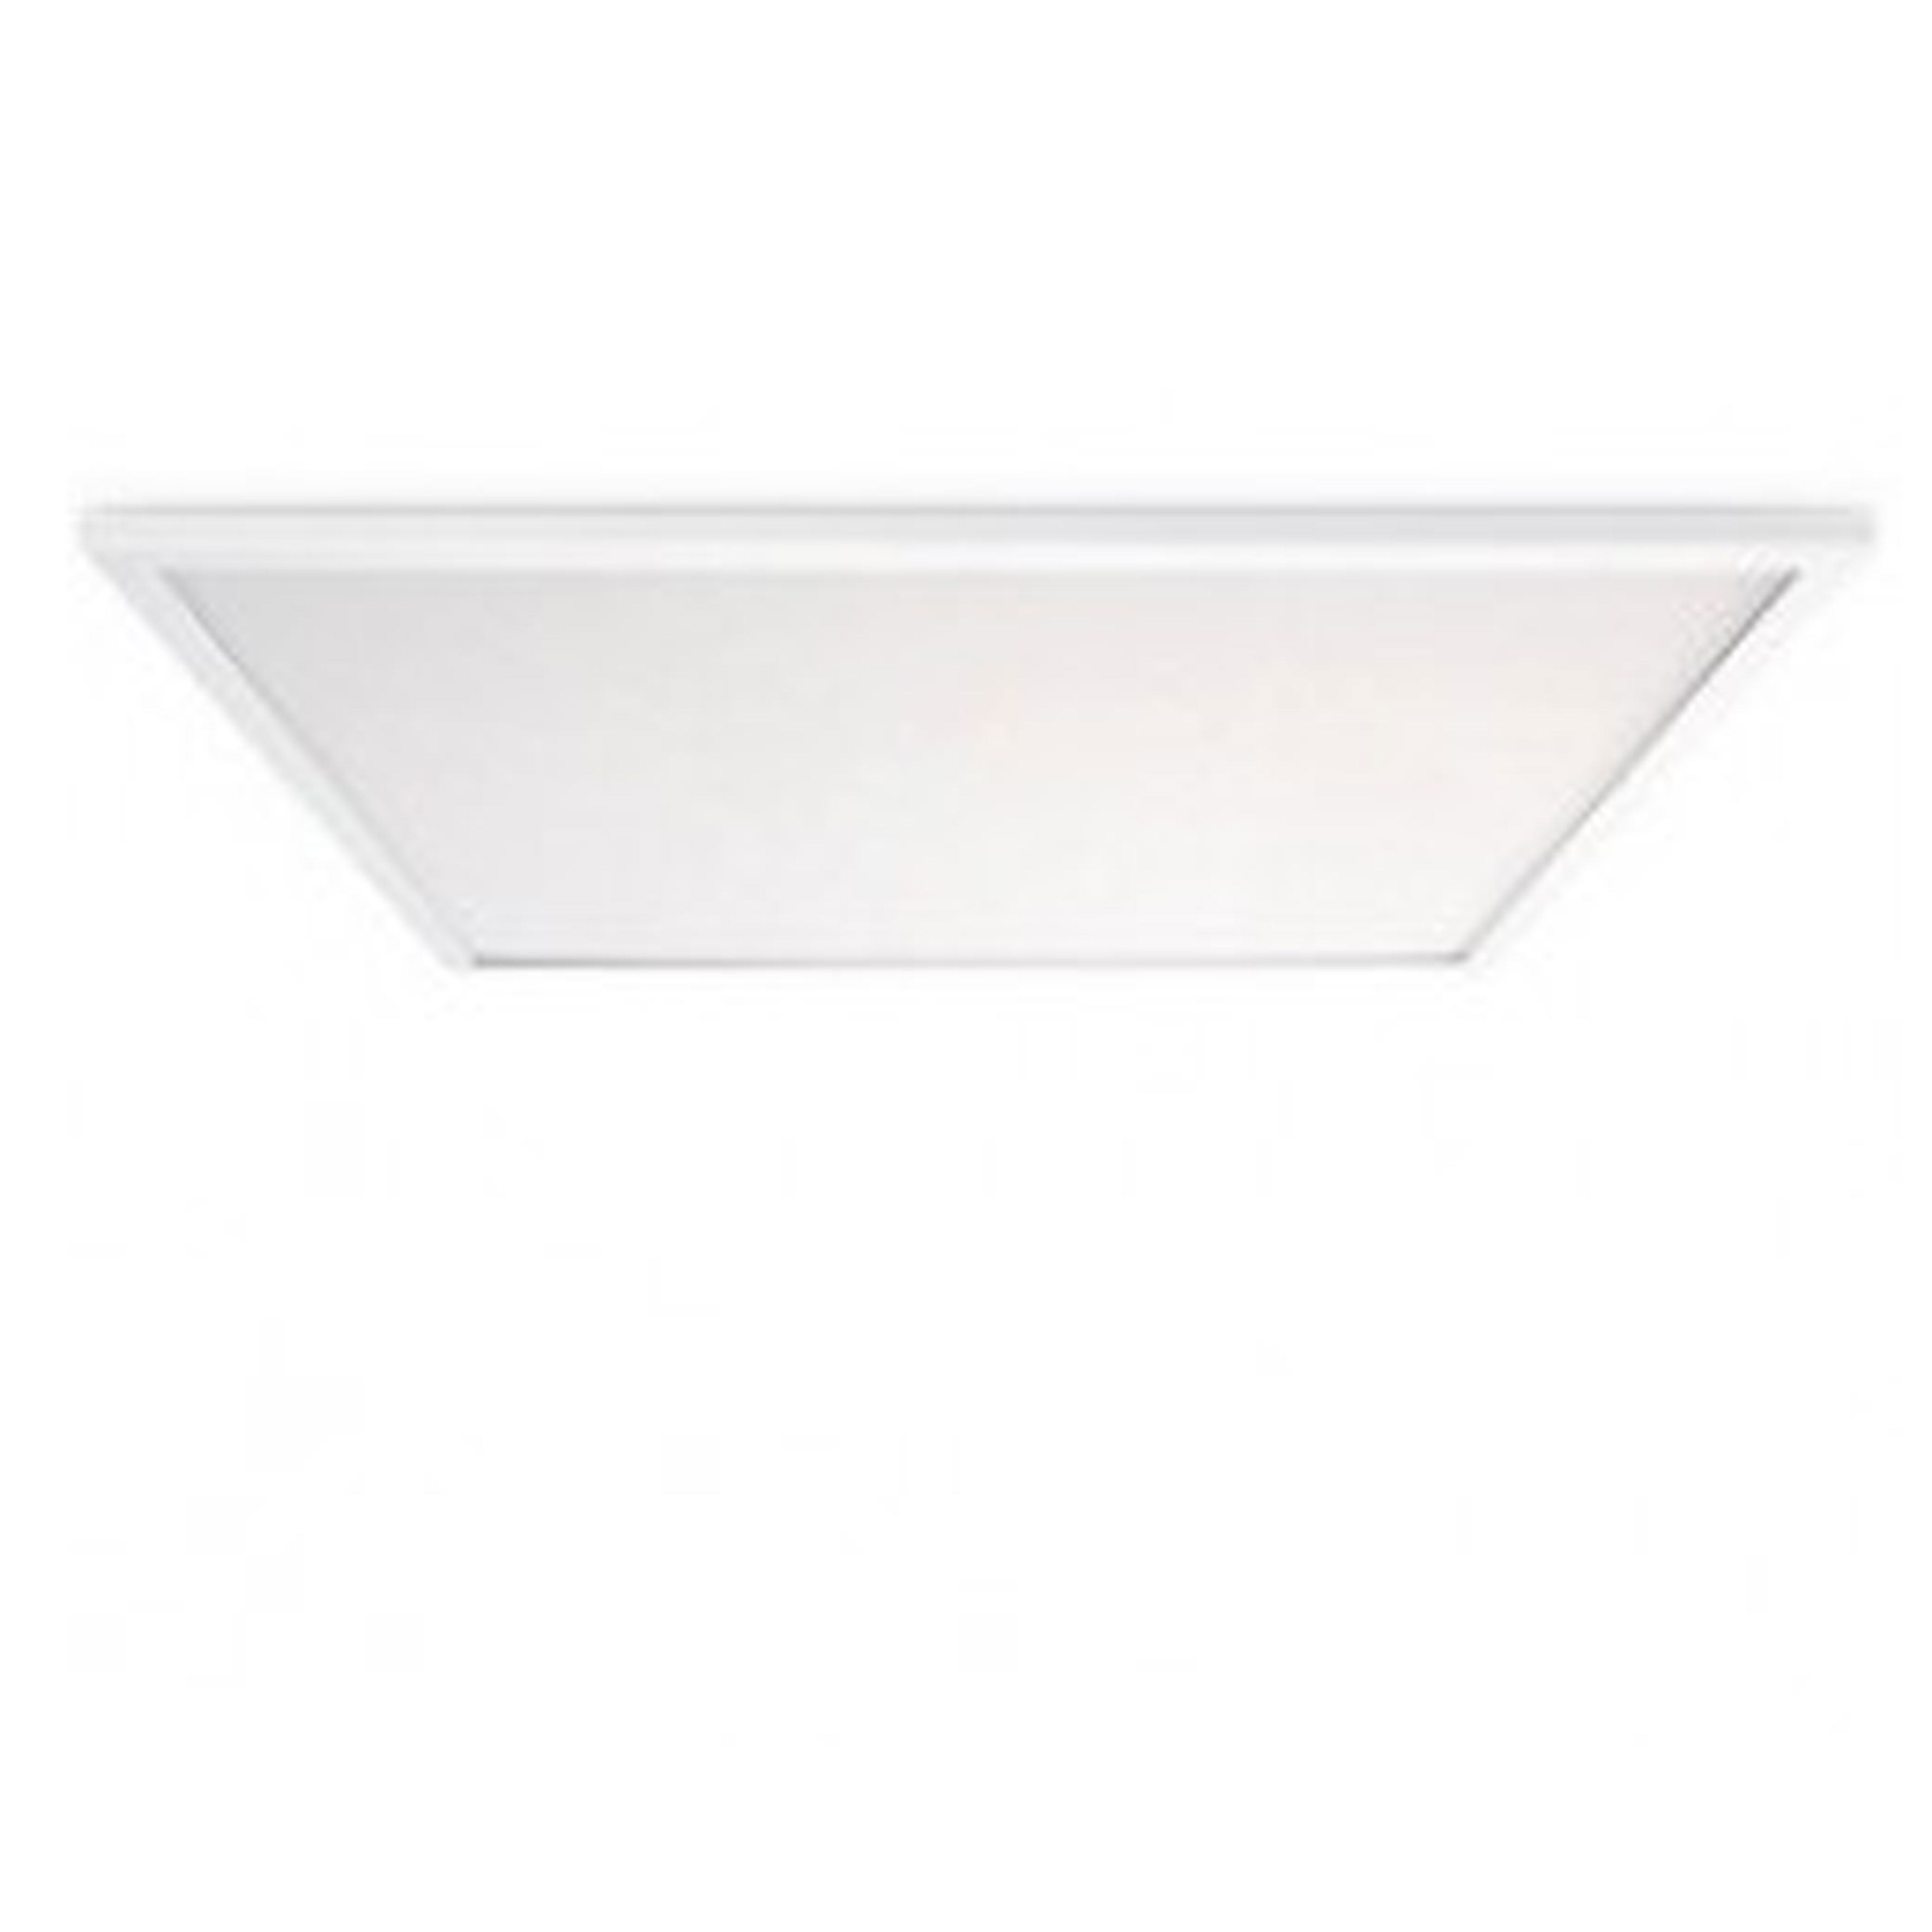 LED PANEL 600X600 32W COOL WHITE